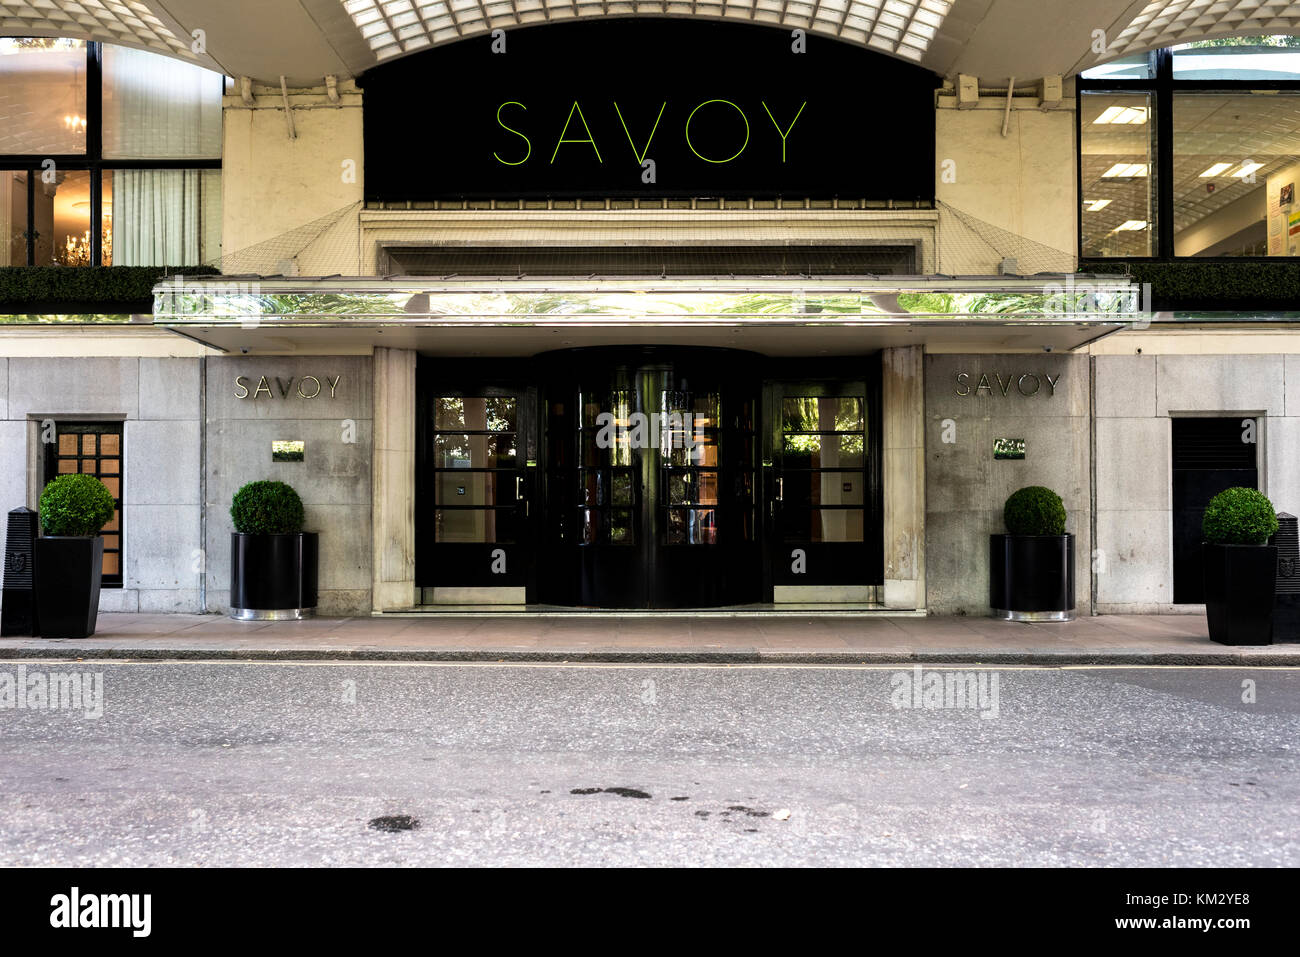 View of the rear entrance to the Savoy Hotel, London - Stock Image